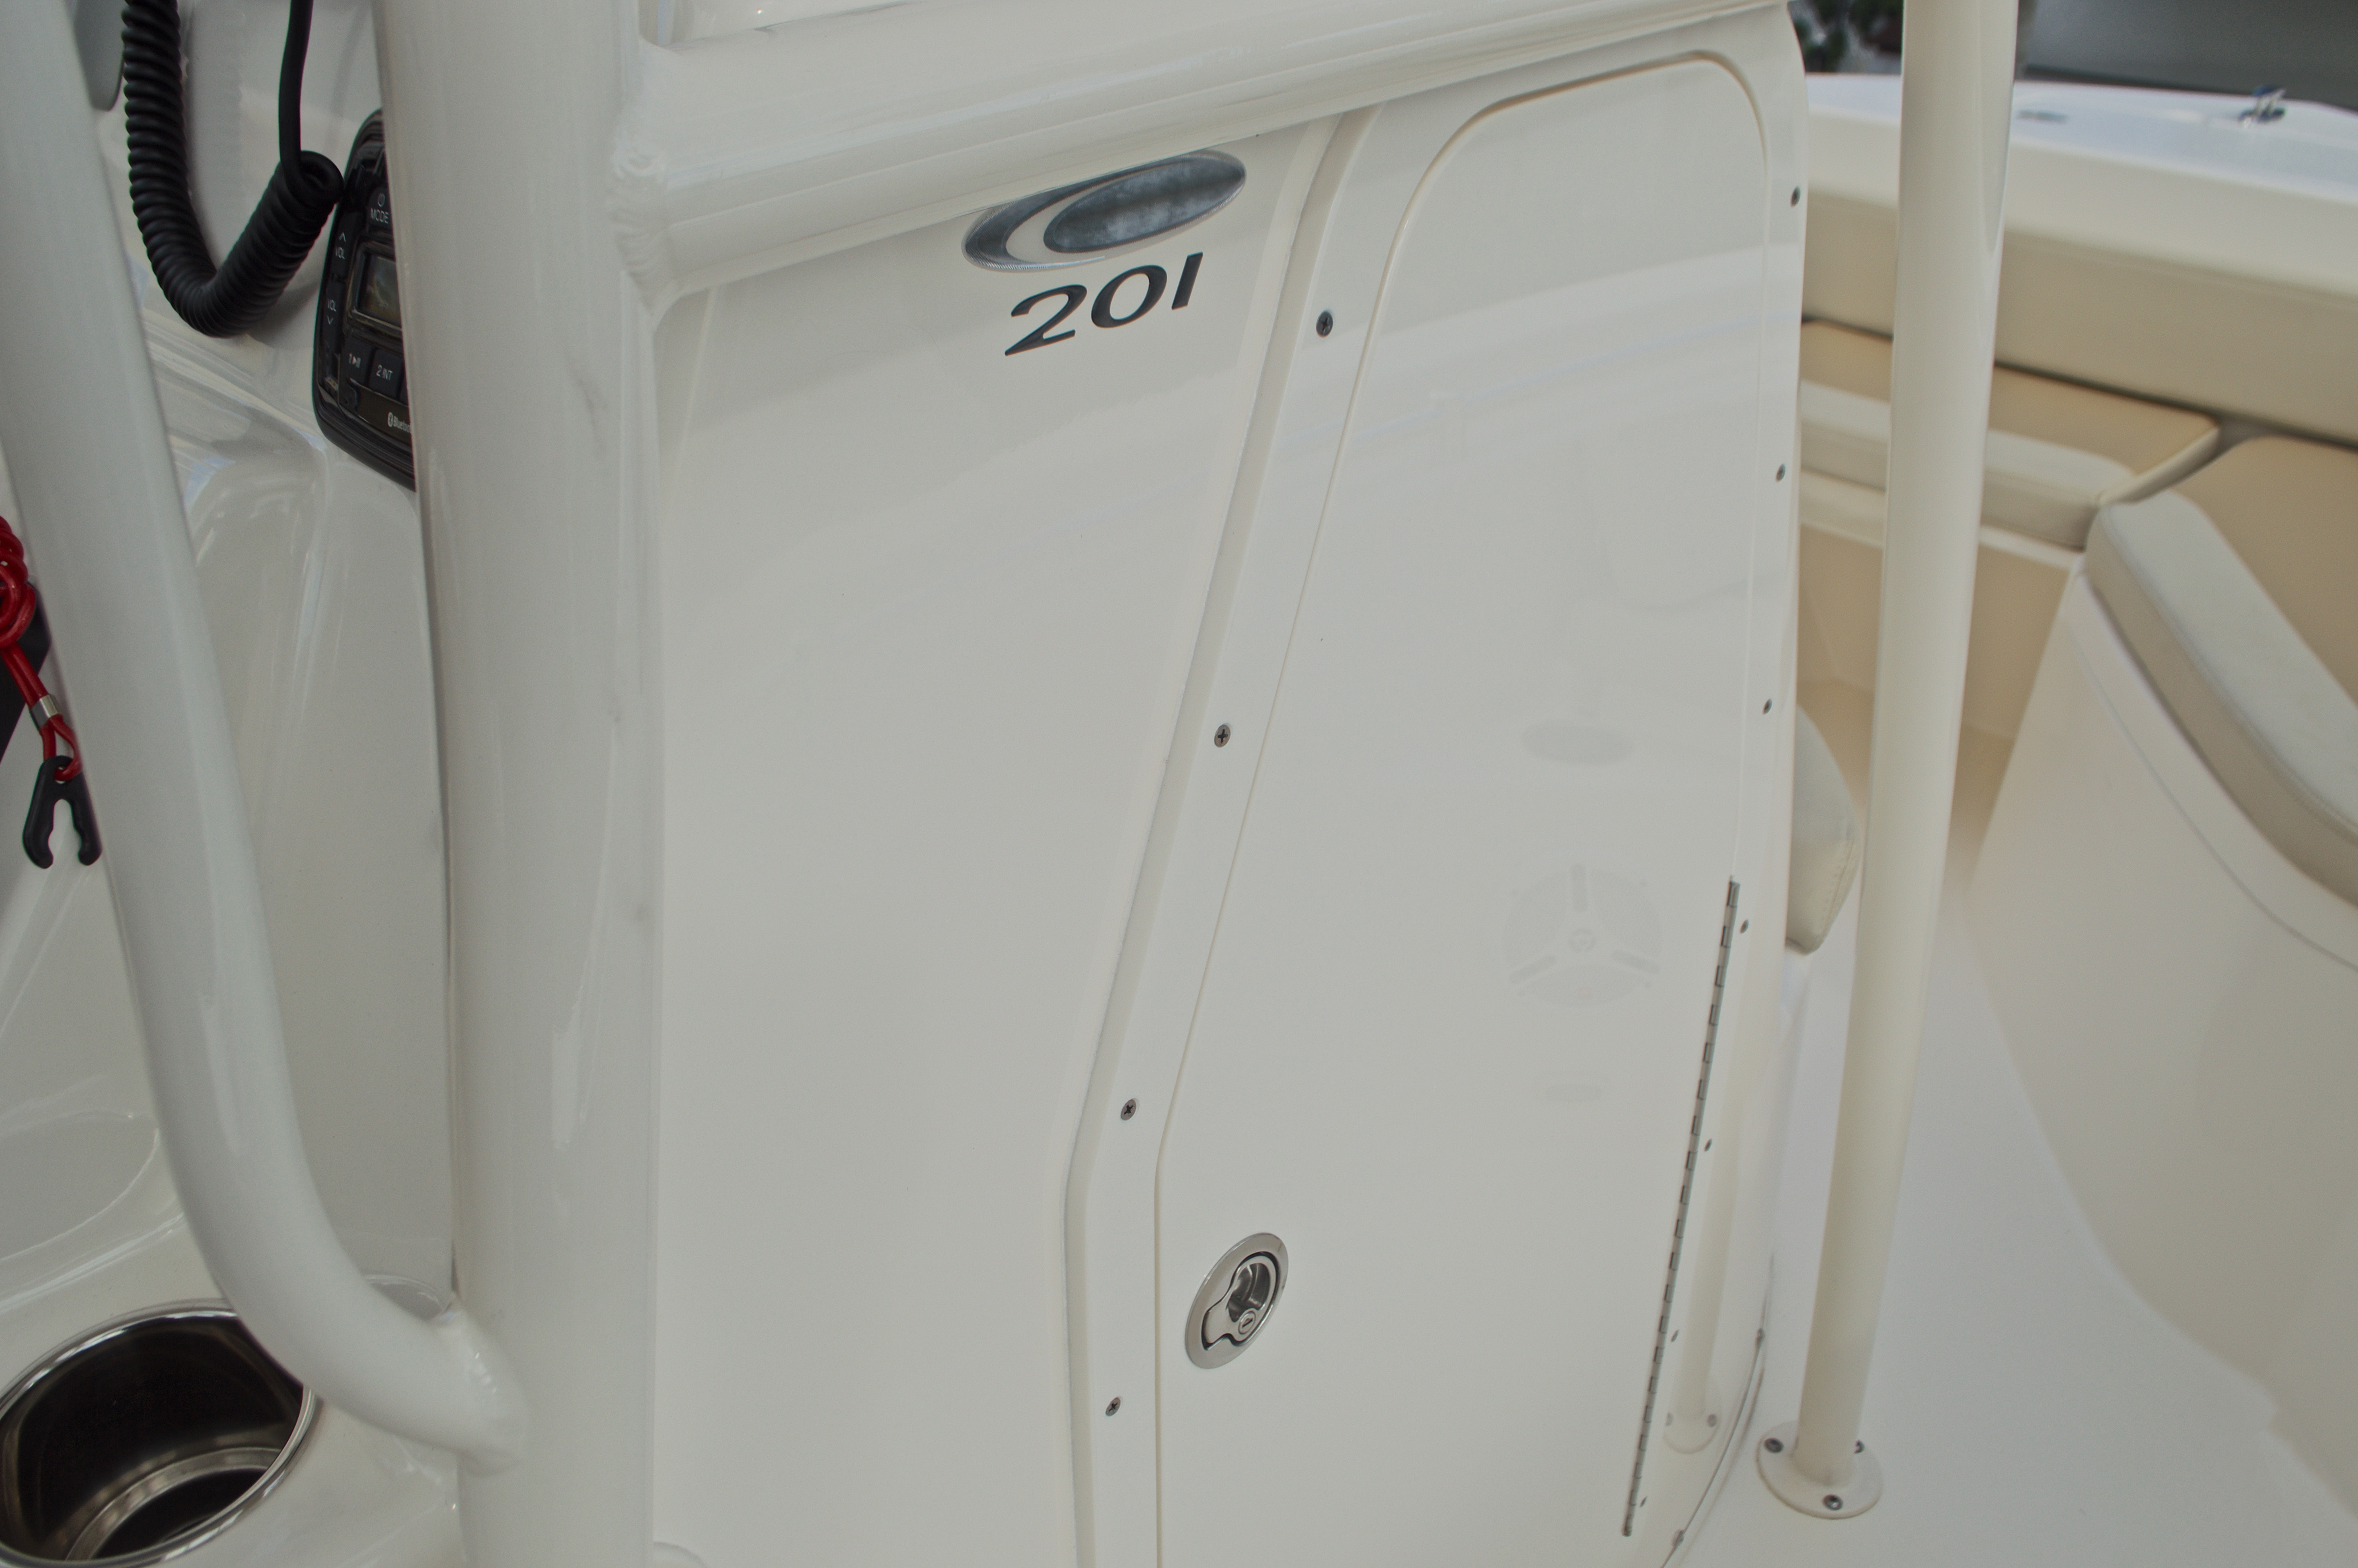 Thumbnail 36 for Used 2015 Cobia 201 Center Console boat for sale in West Palm Beach, FL